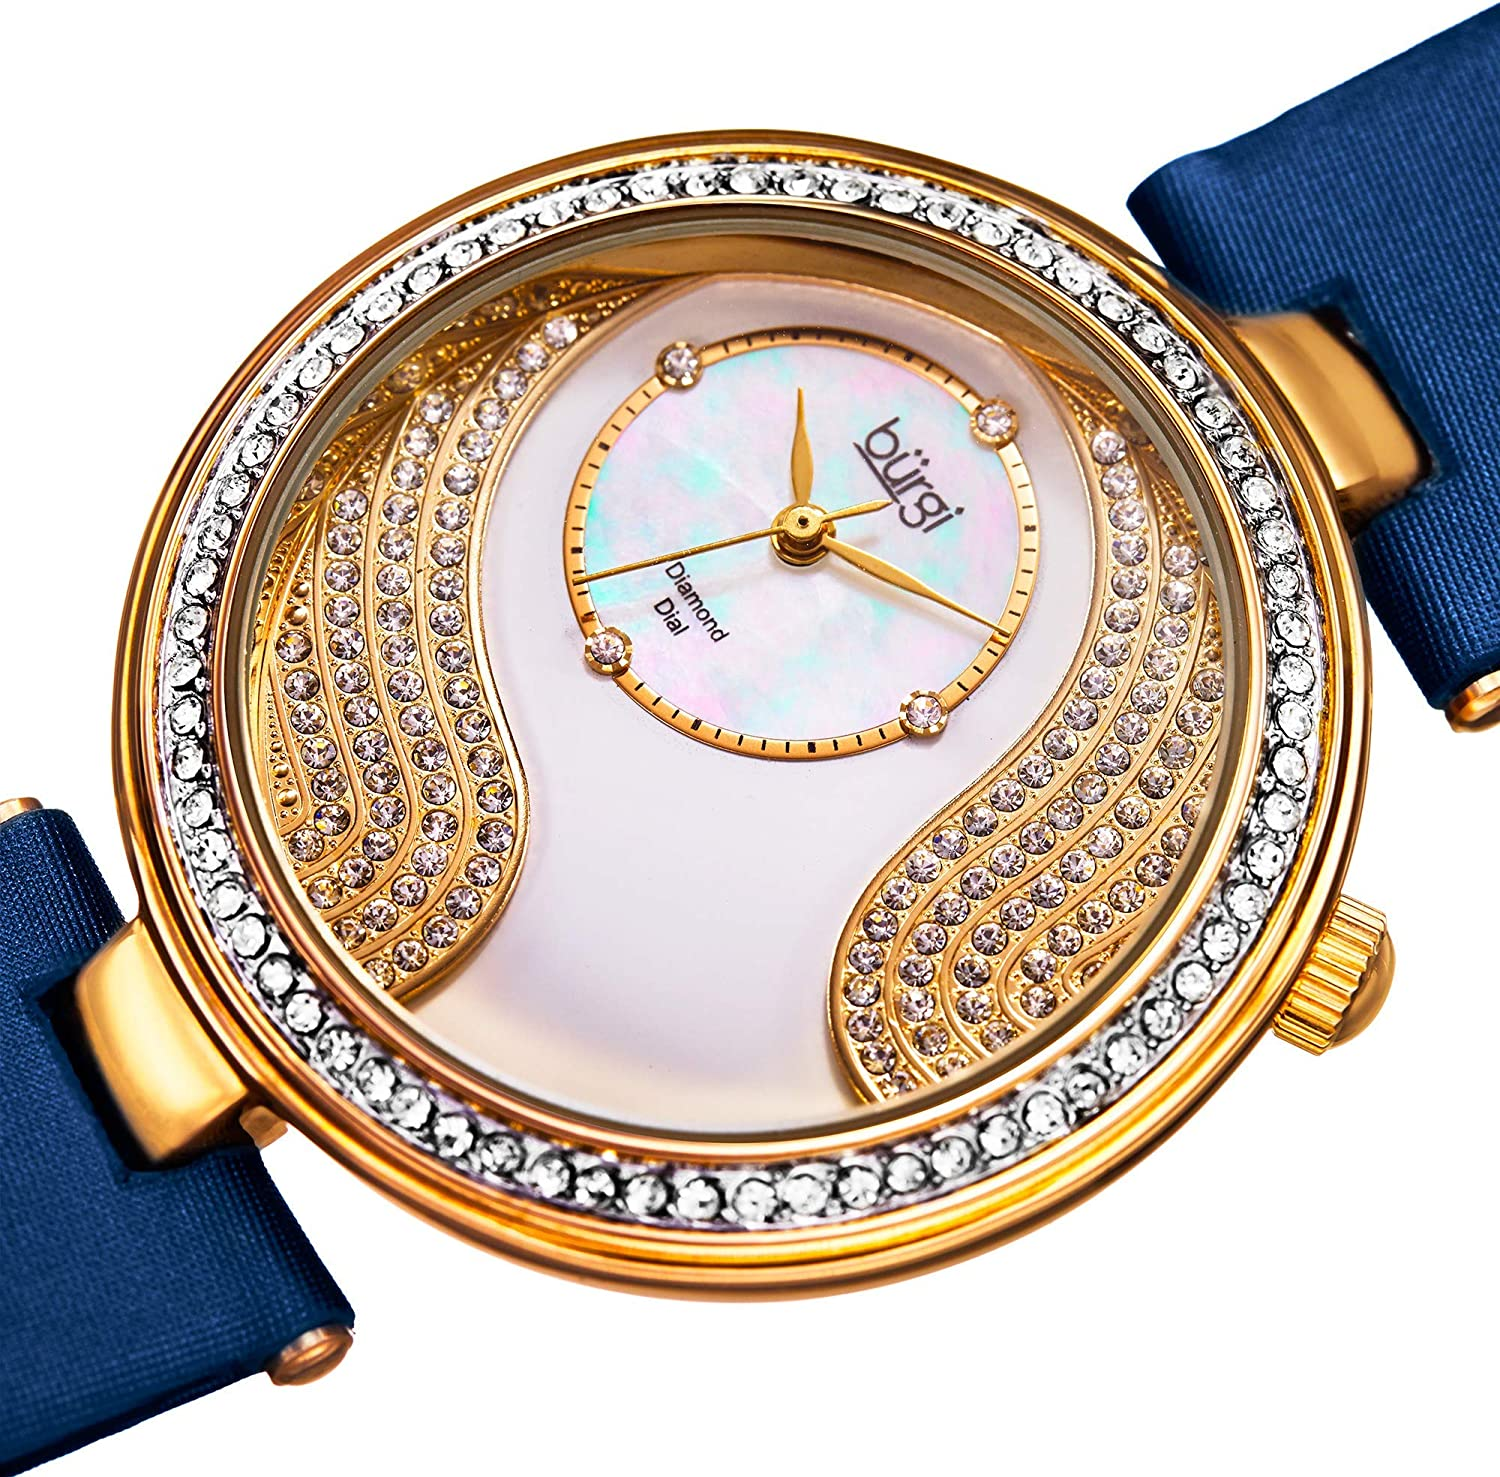 Burgi Unique Crystal Pave Design Women's Watch - Mother-of-Pearl and Sparkling Crystal Dial and Case on Genuine Leather Strap - BUR155 Blue